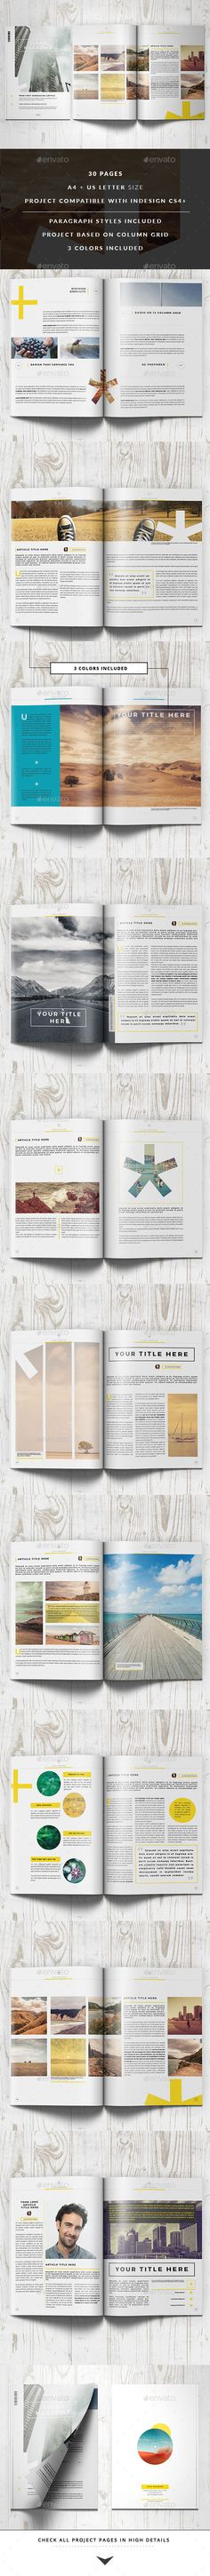 Clean Magazine Template #design #journal Download: http://graphicriver.net/item/clean-magazine-template/11422937?ref=ksioks